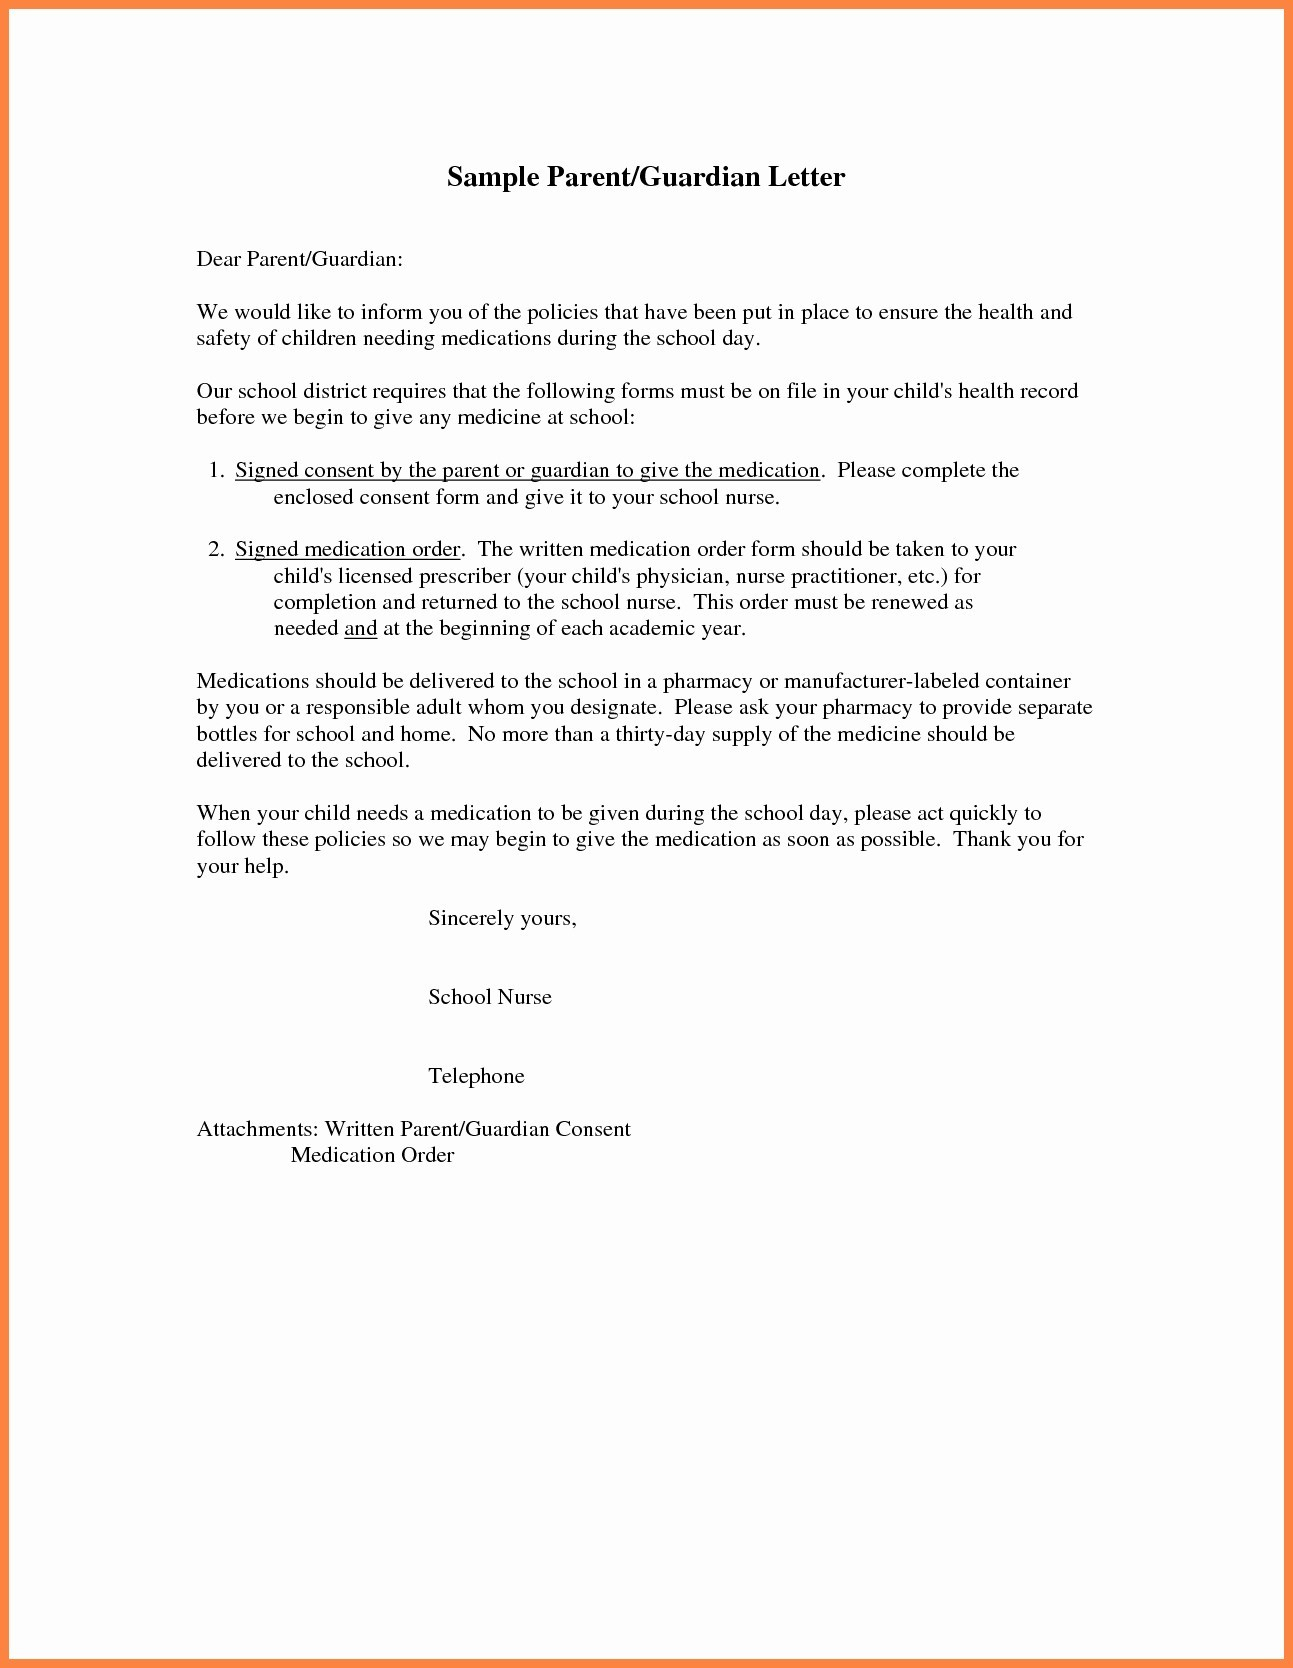 Parent Permission Letter Template - How to Write A Permission Letter Sample Choice Image Letter format